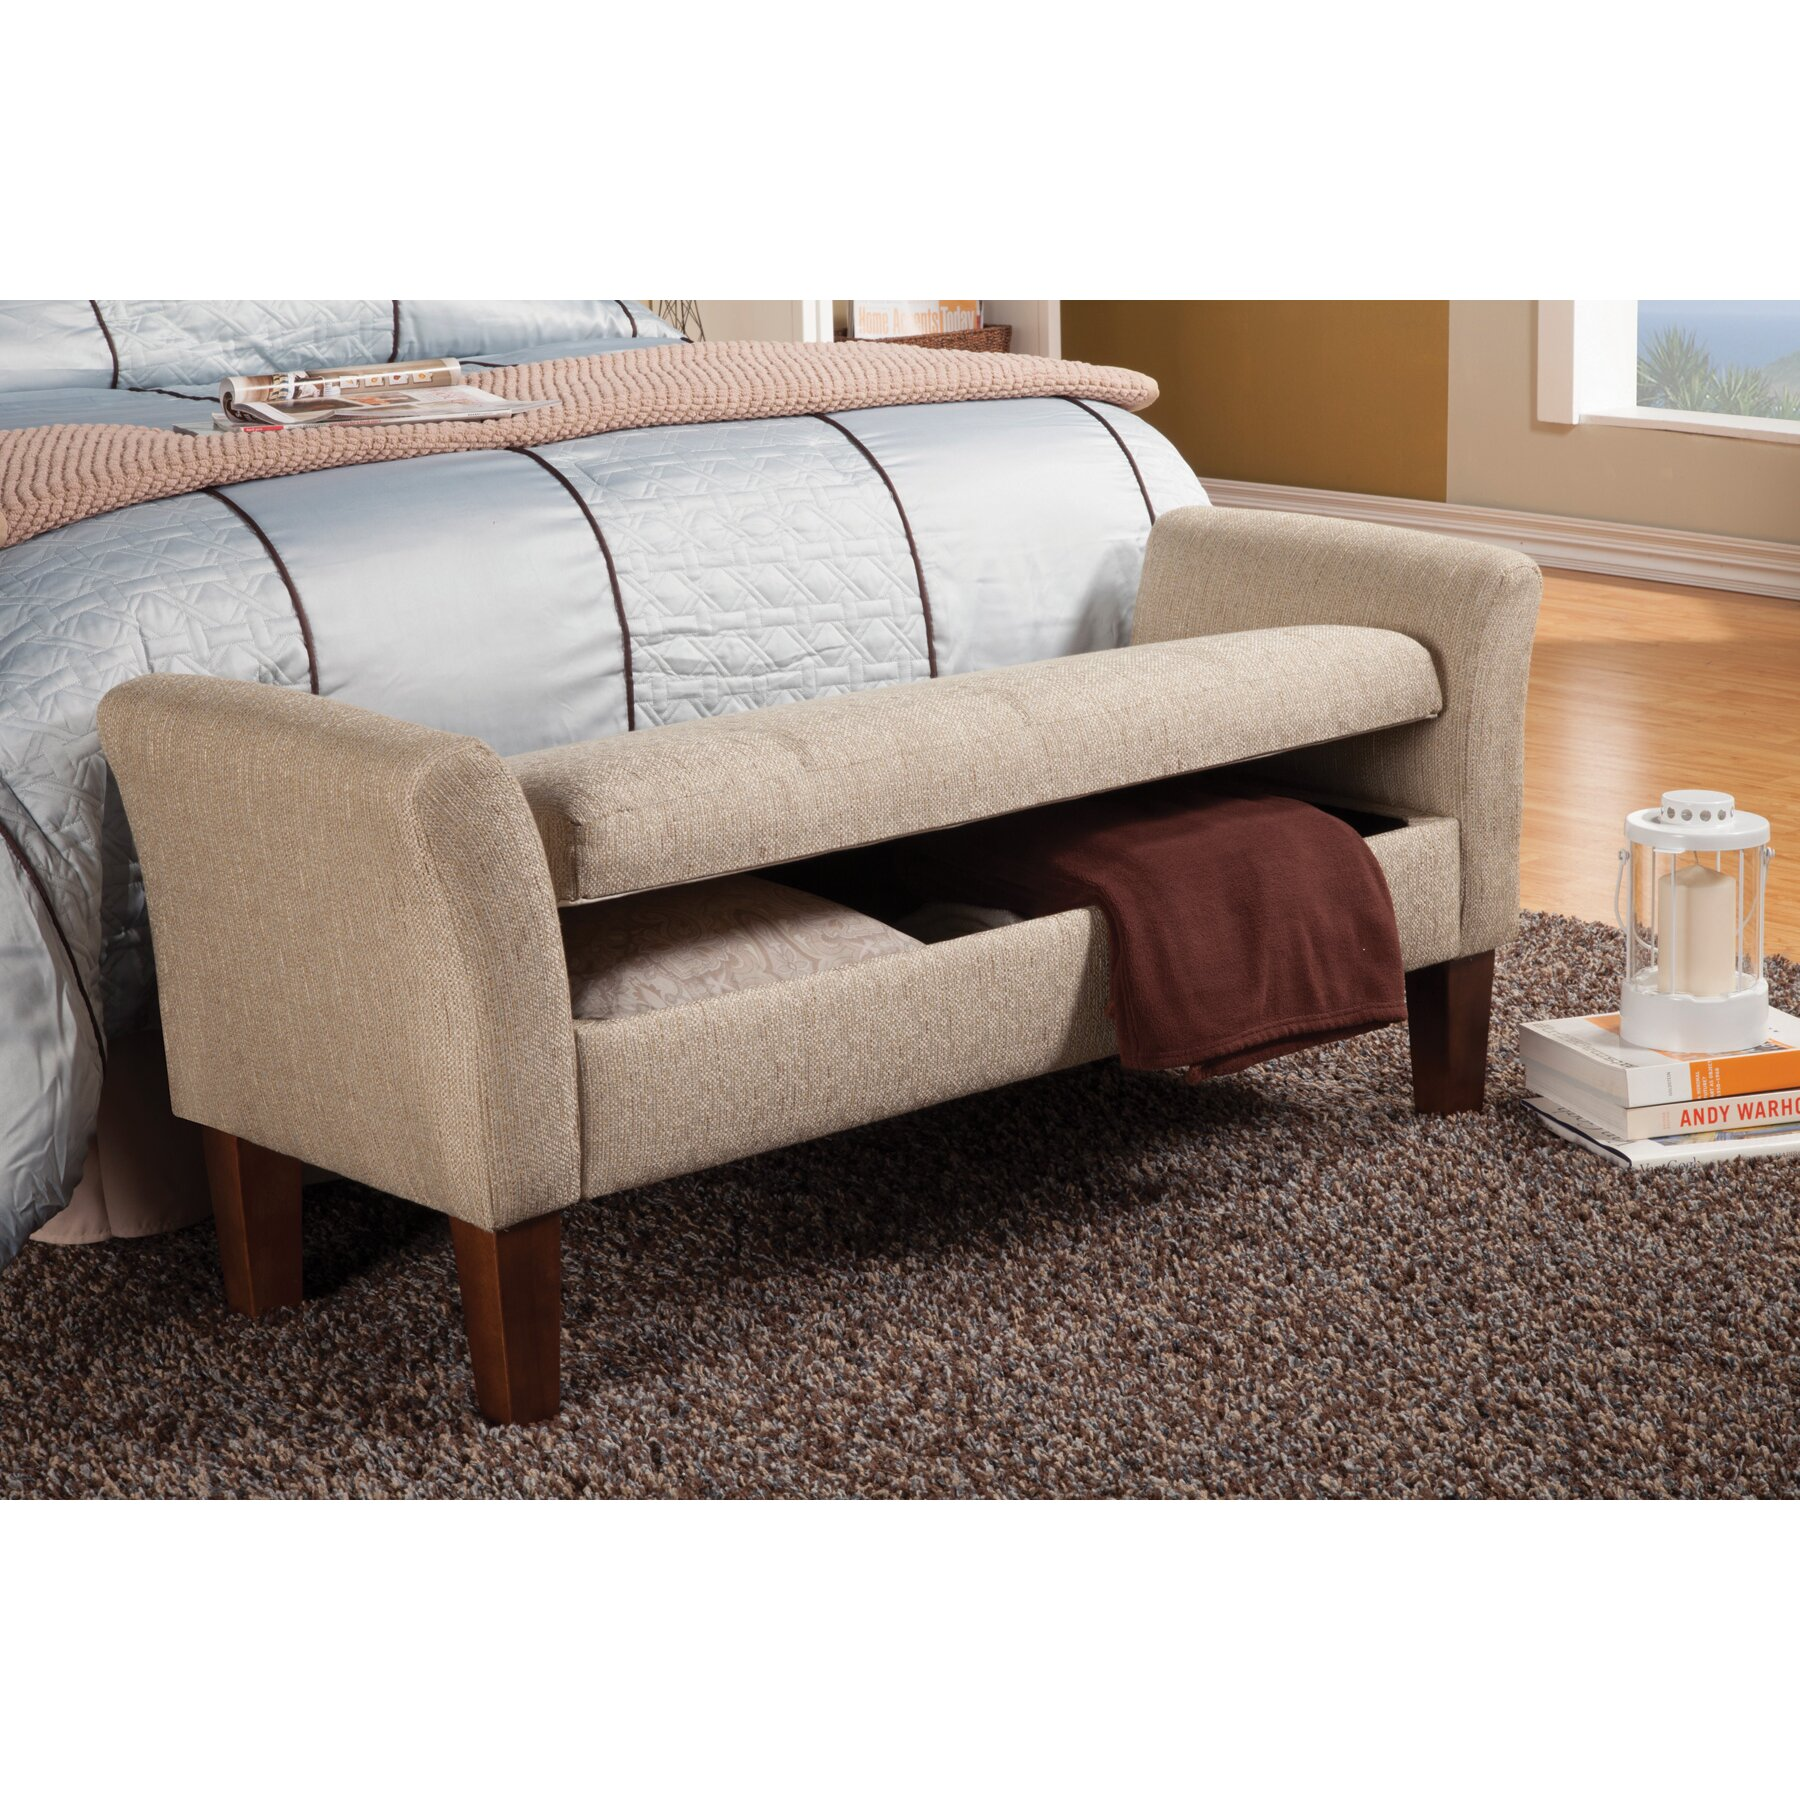 Wildon Home Upholstered Storage Bedroom Bench Reviews Wayfair